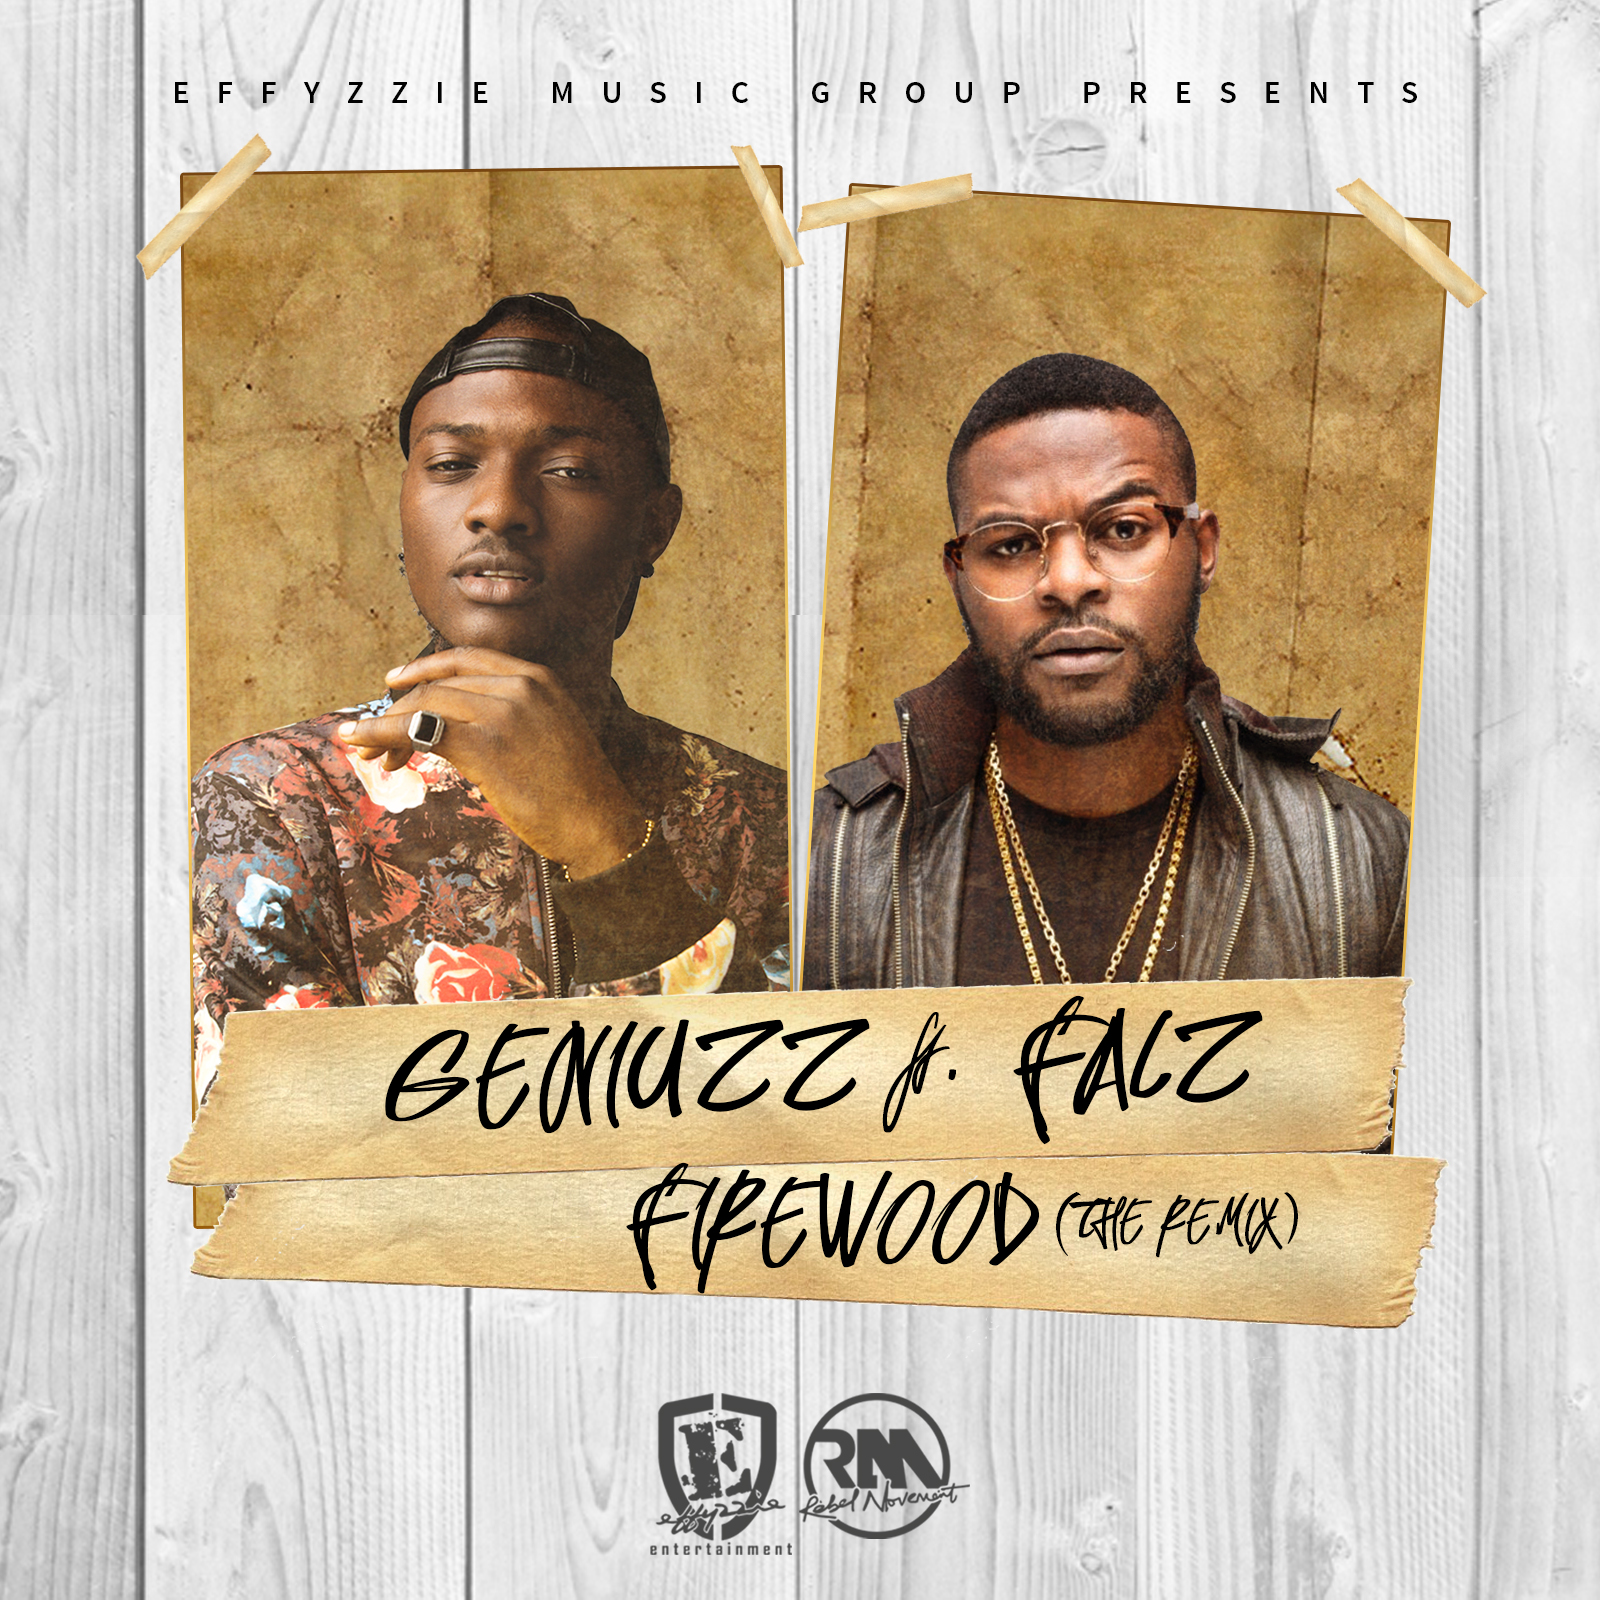 Effyzzie Music Act, Geniuzz Releases Remix of New Single Titled 'Firewood' Featuring Falz | LISTEN